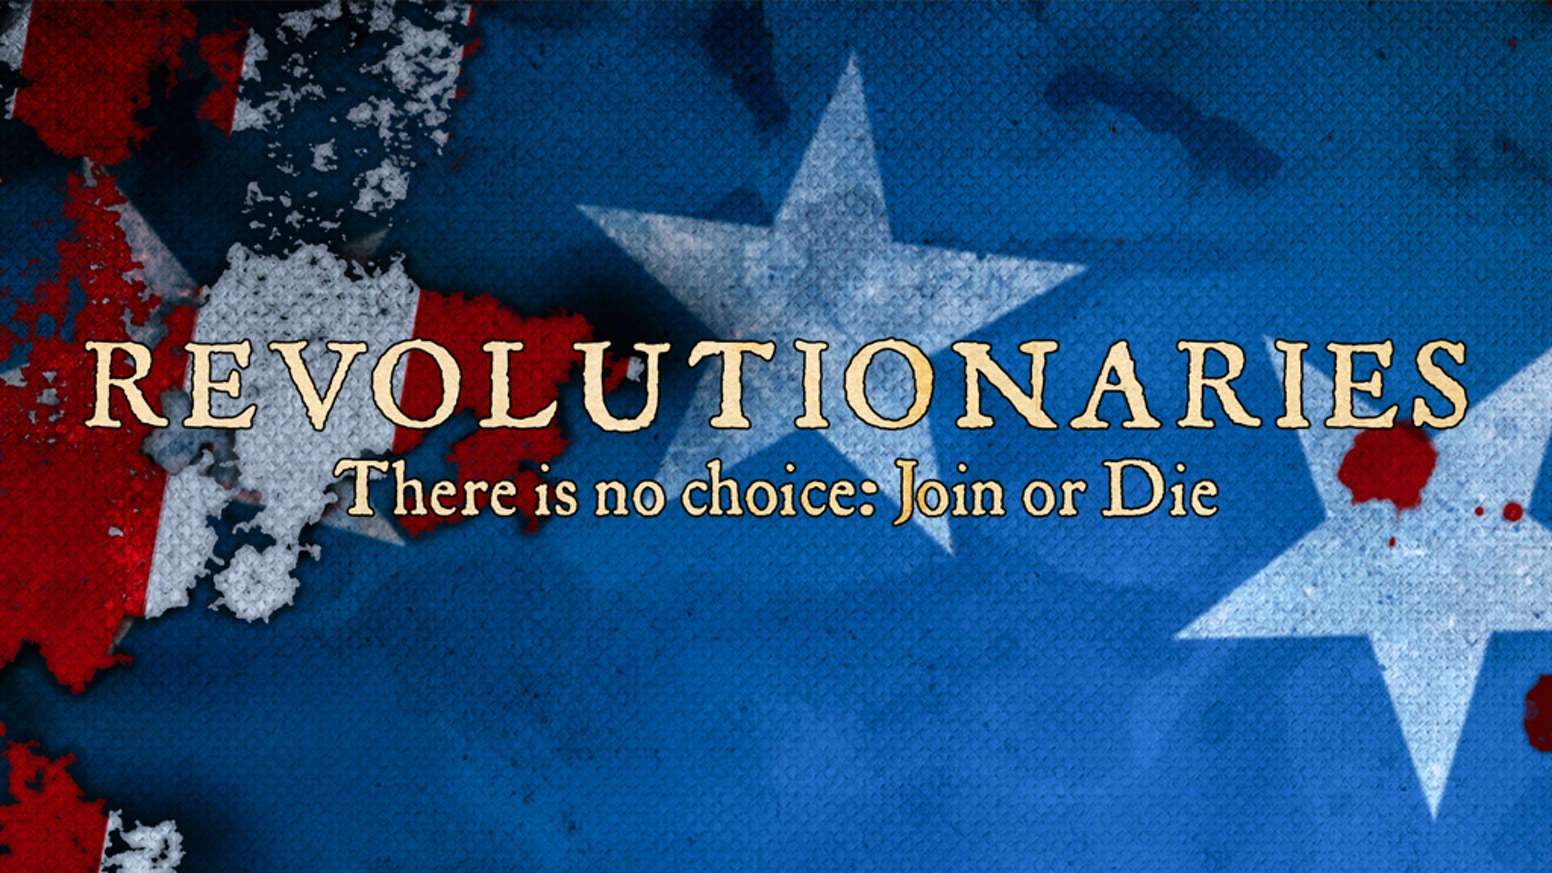 Revolutionaries is a tabletop RPG set during the American War of Independence, where history's truths hide a secret war.